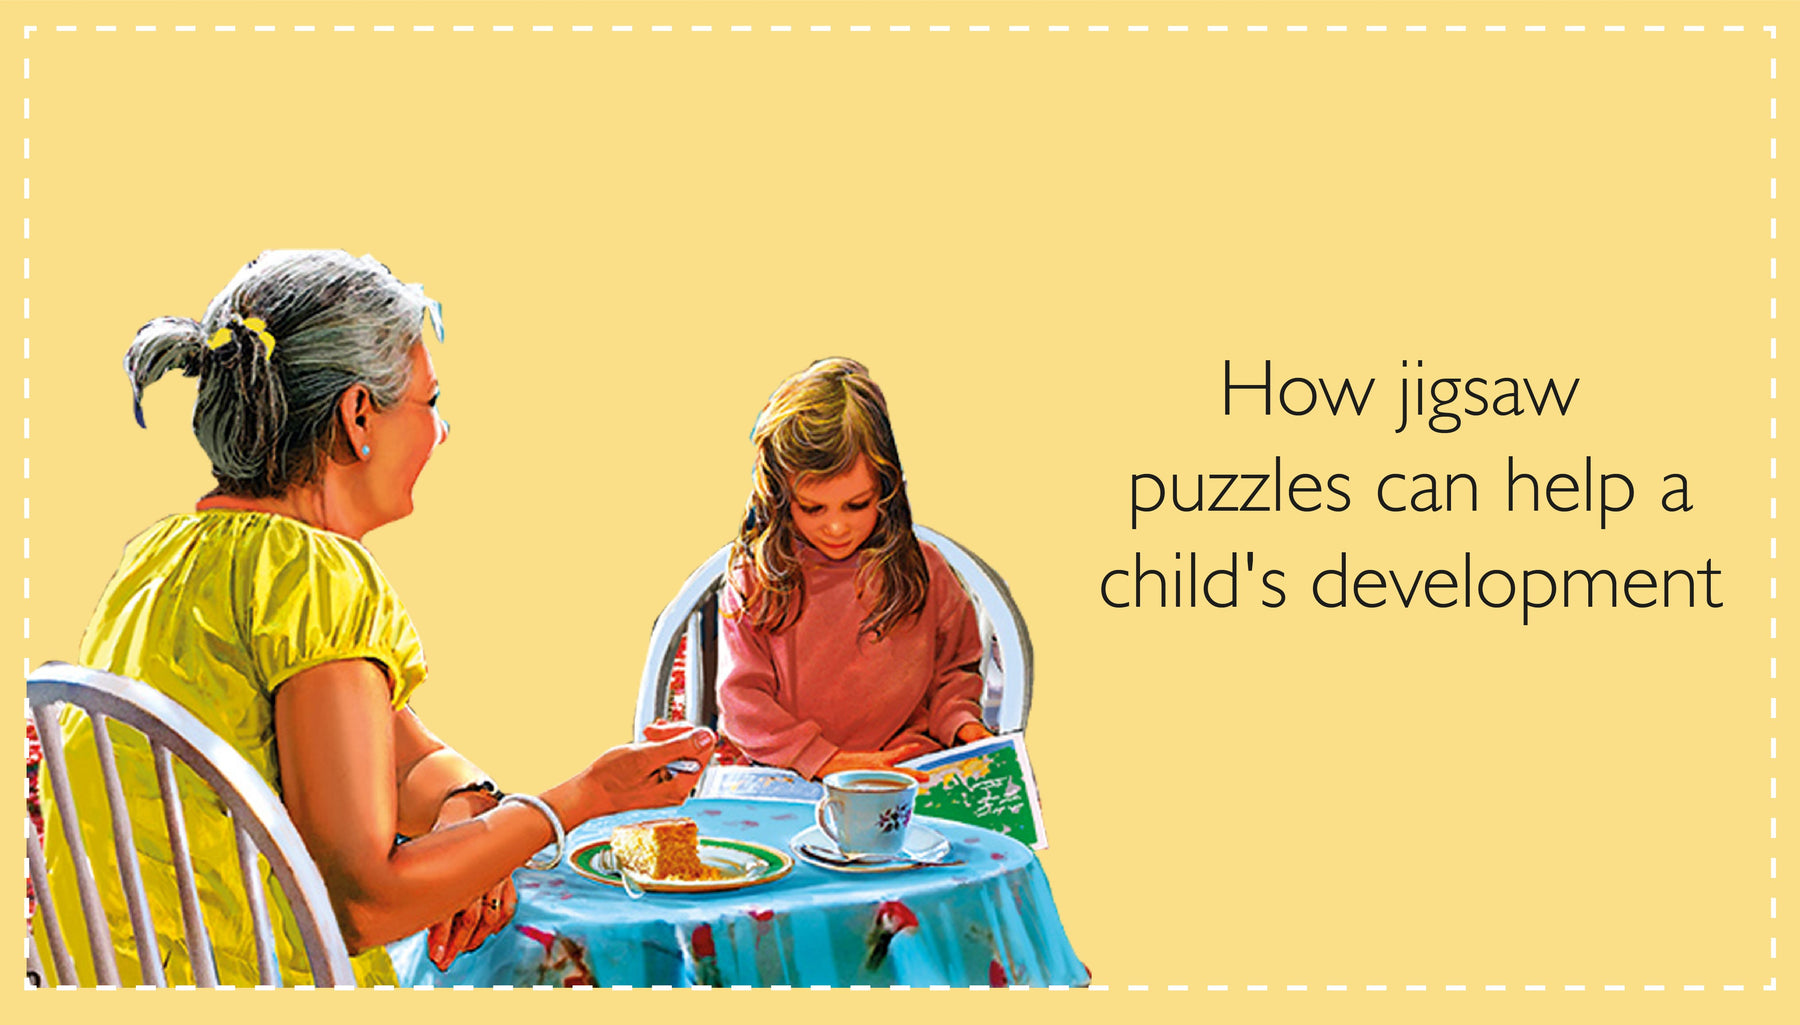 How jigsaw puzzles can help a child's development